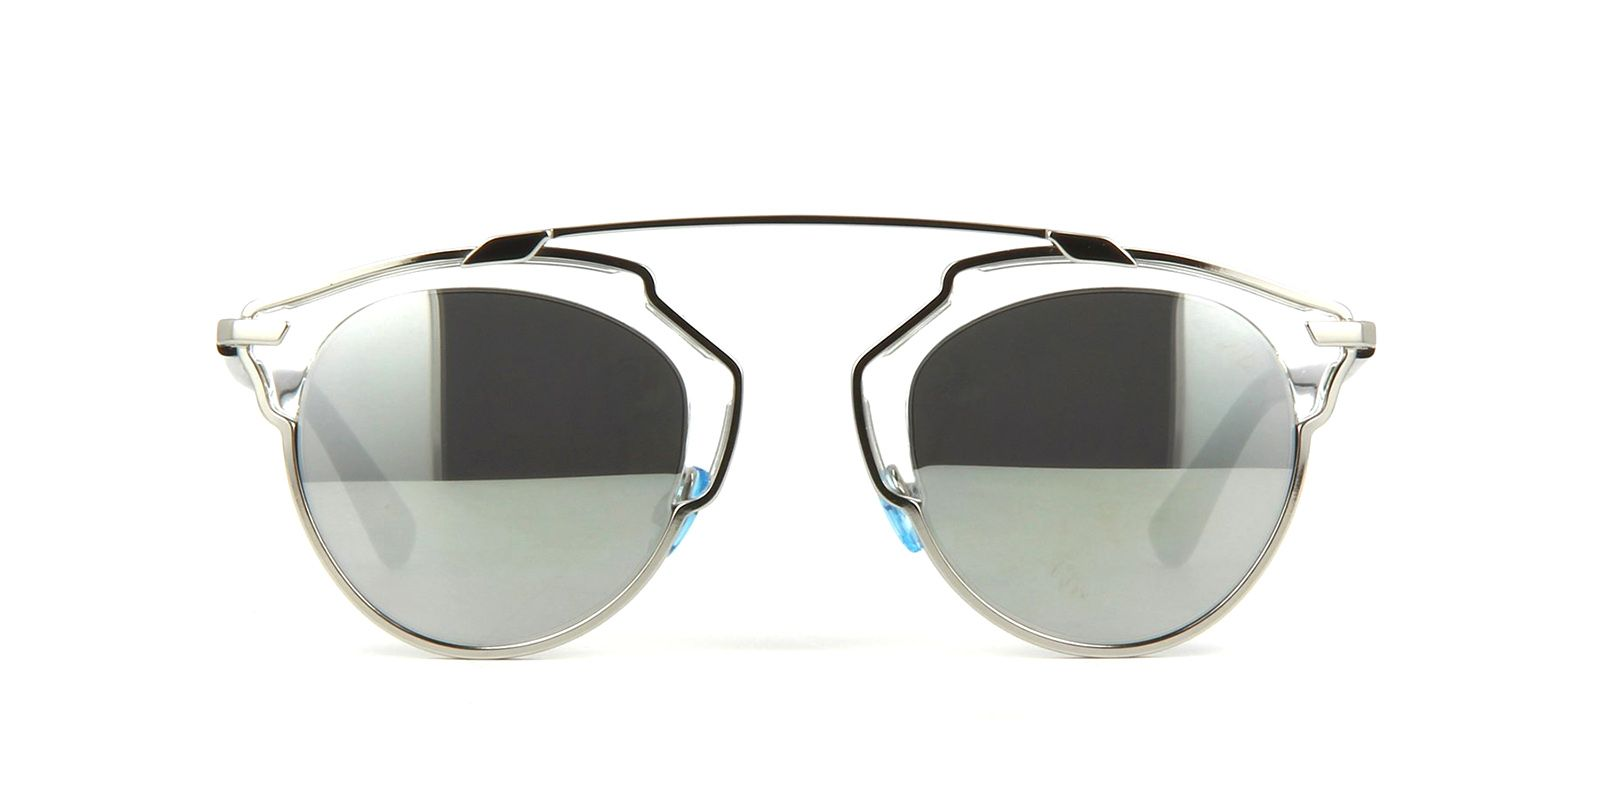 8d0867624de92 Dior So Real APPDC - SoReal Silver and Crystal Sunglasses